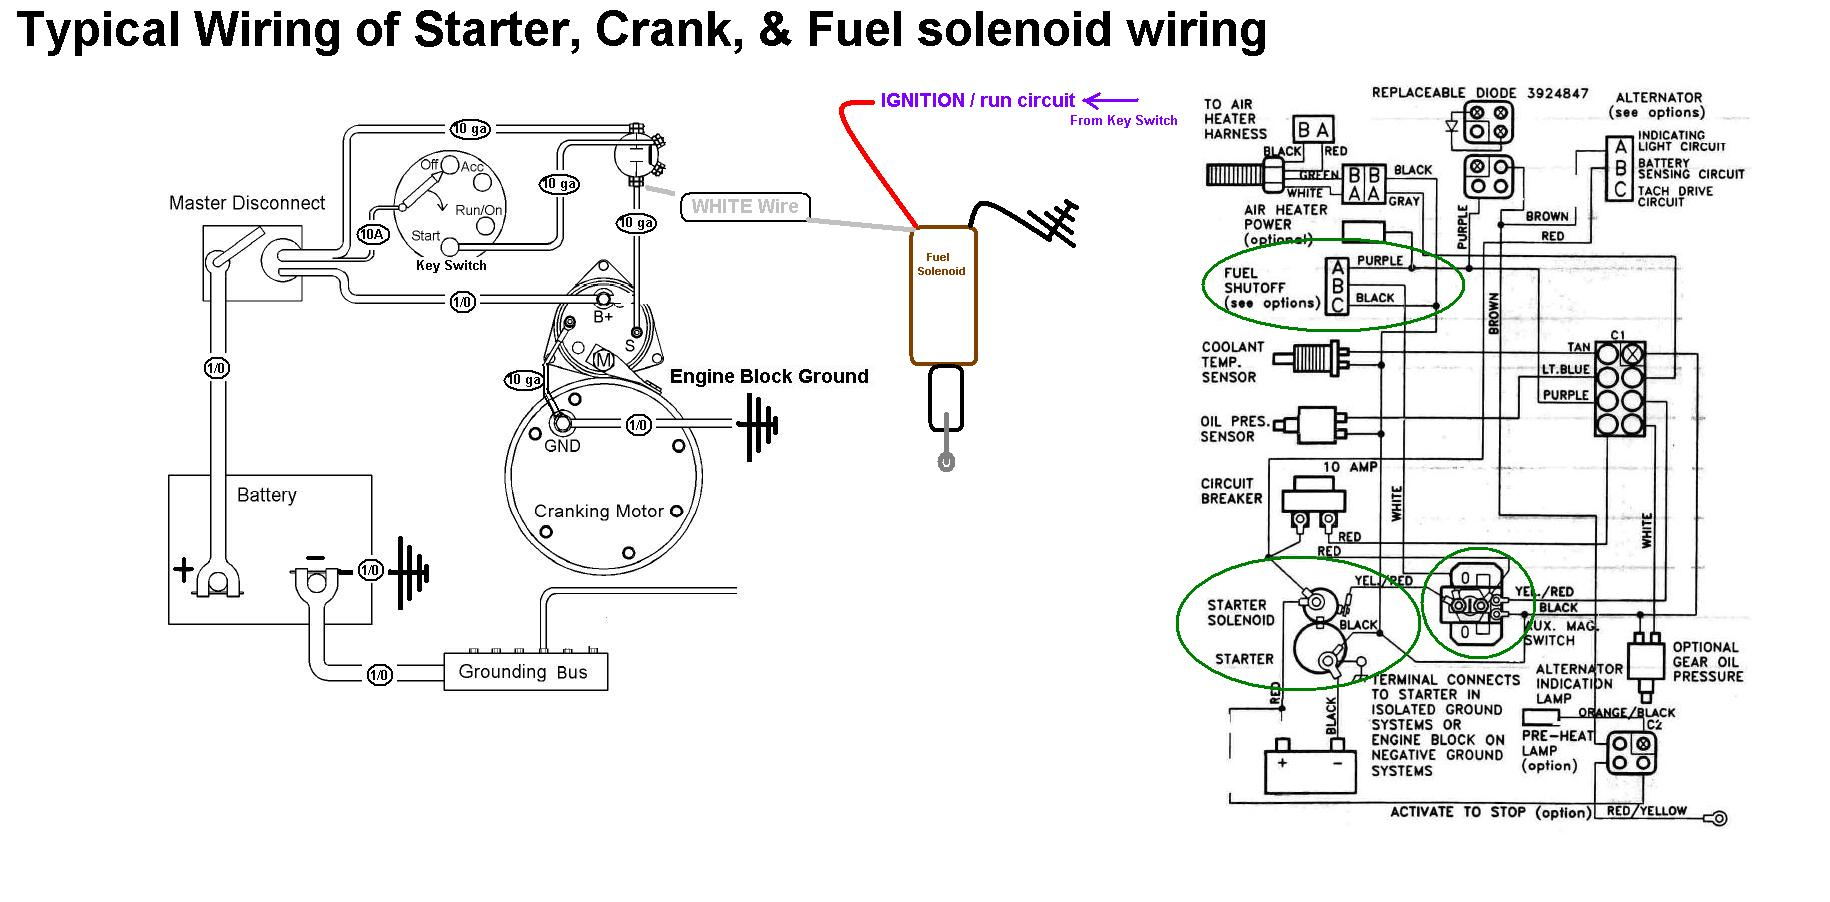 Diagram Of Ammeter in addition 87 Chevy Dual Tank Wiring Diagram besides Pdf Club Car With Solenoid Wiring Diagram besides Starter Crank Fuel Shutoff Solenoid Wiring in addition Mump 0209 Ford Mustang Brakes. on free wiring diagram for 1967 mustang